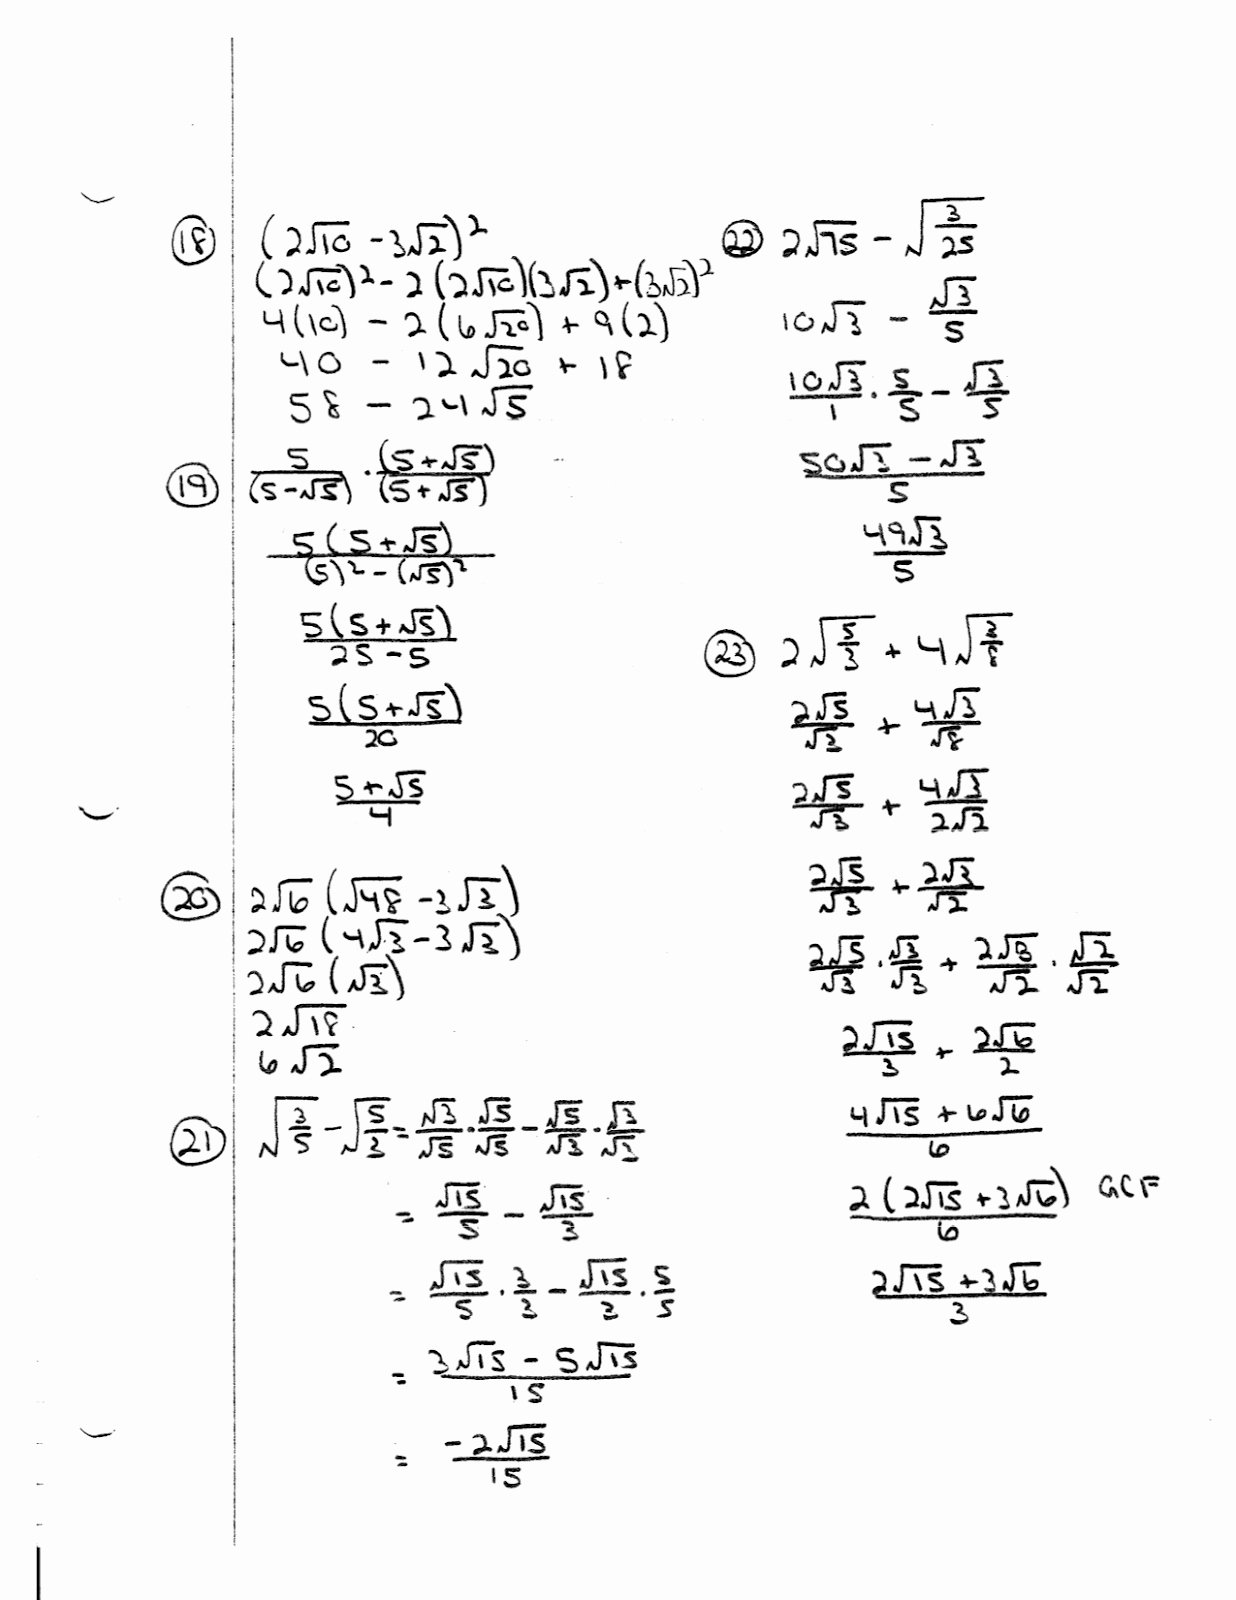 Completing the Square Practice Worksheet Elegant Pleting the Square Worksheet Practice B